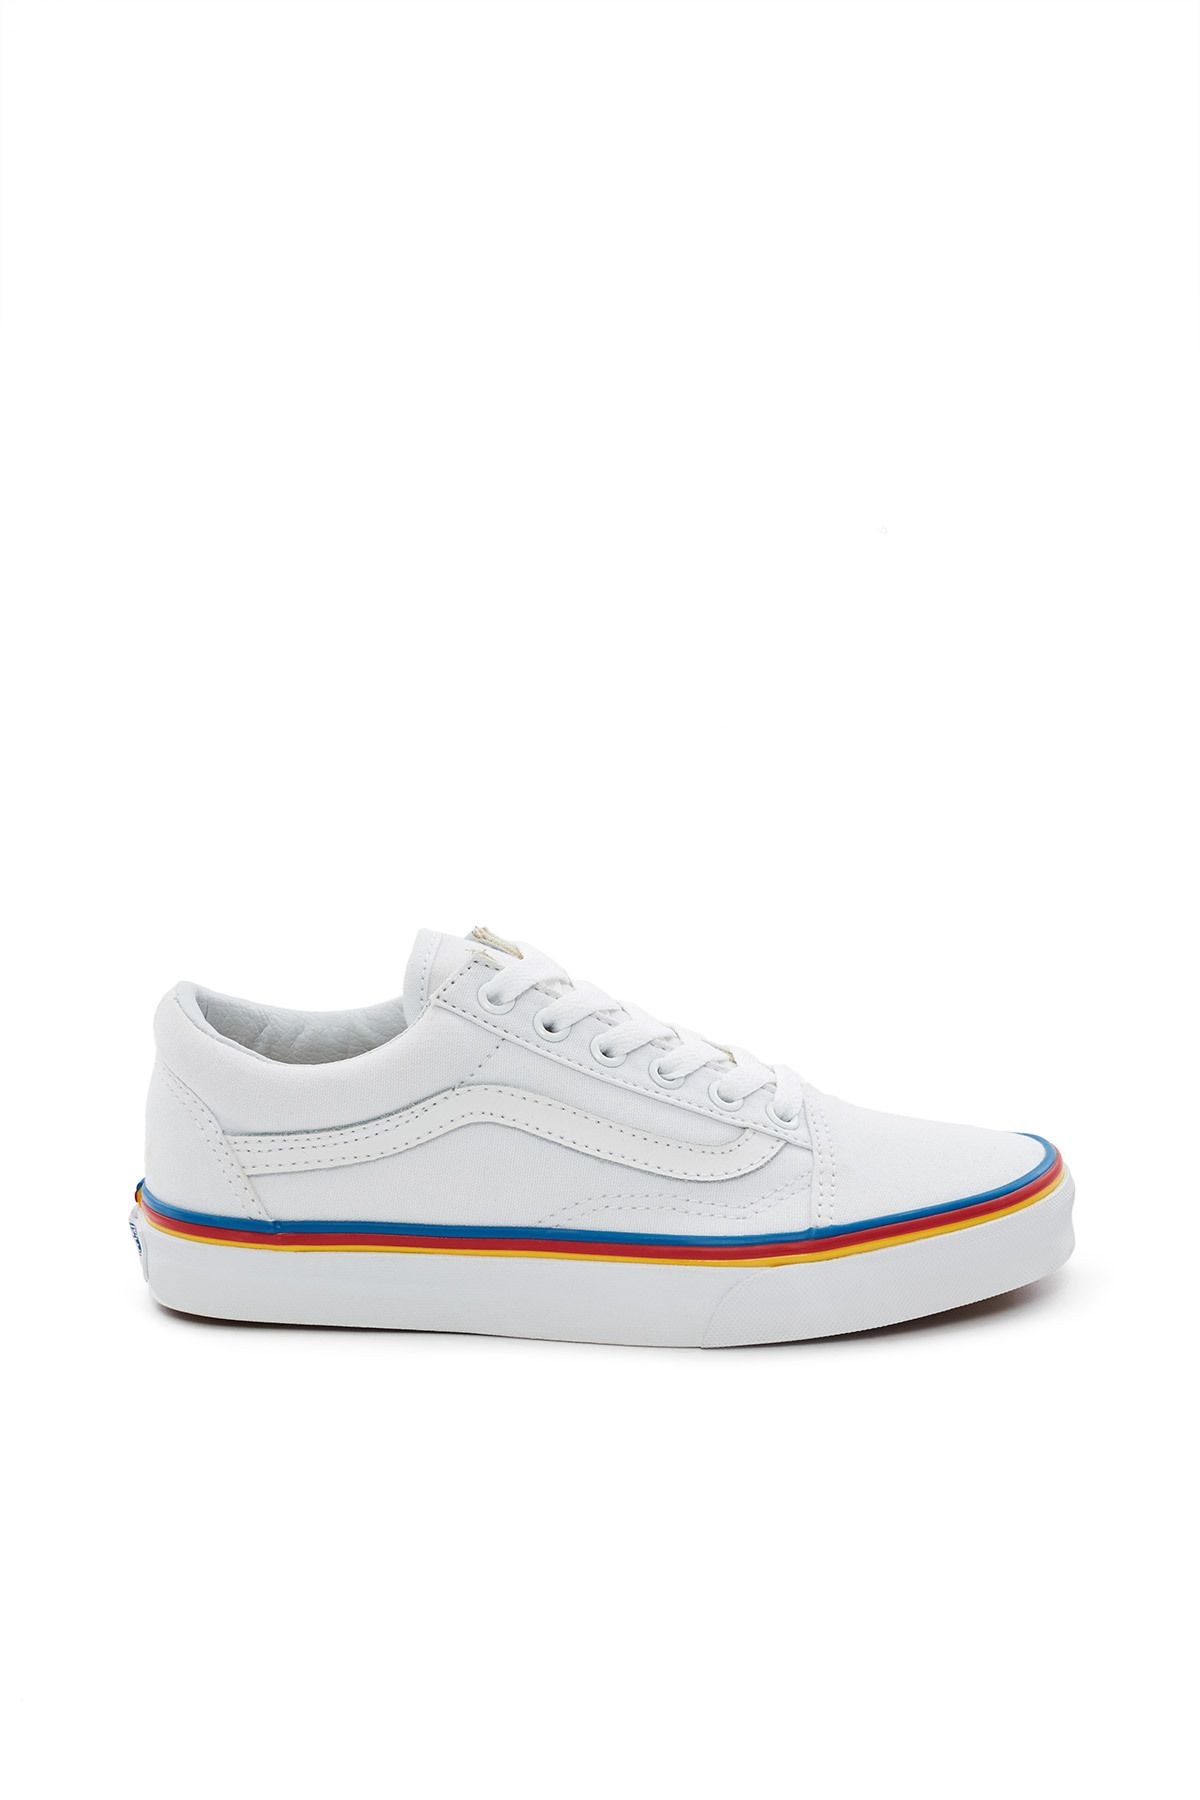 b679e0a0db2 Vans, Old Skool Sneaker Vans' iconic Old Skool sneakers are rendered in an  all-white canvas upper with tri-color blue, red, and yellow foxing stripes  that ...